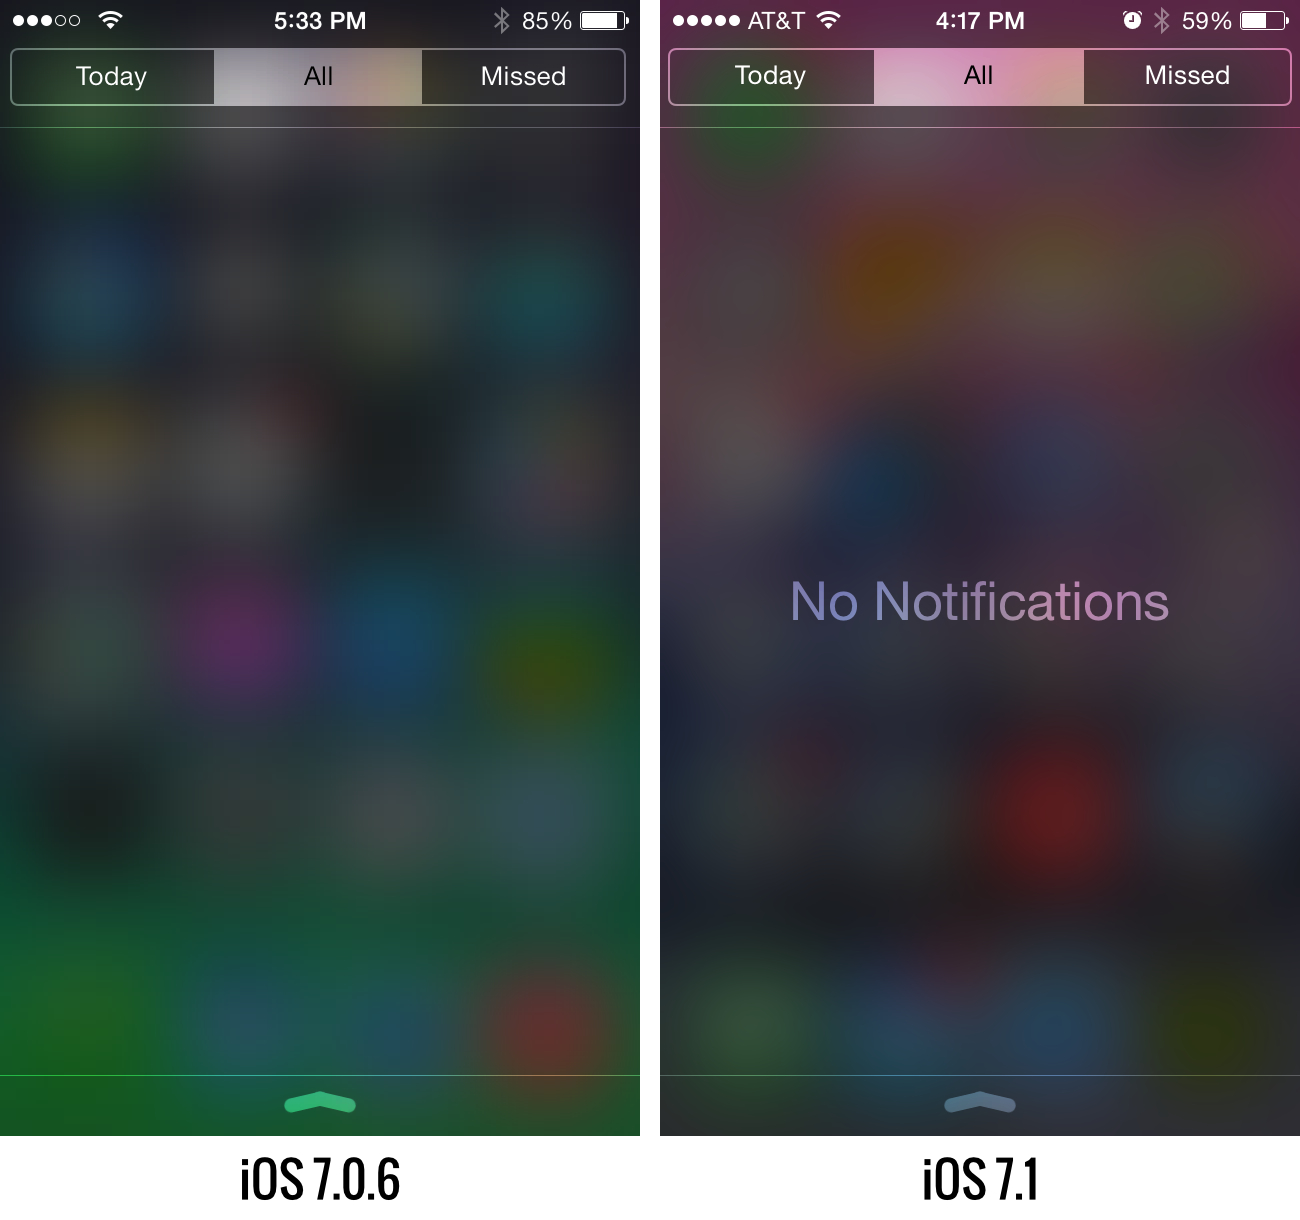 Don't have any notifications? iOS 7.1 will tell you so.